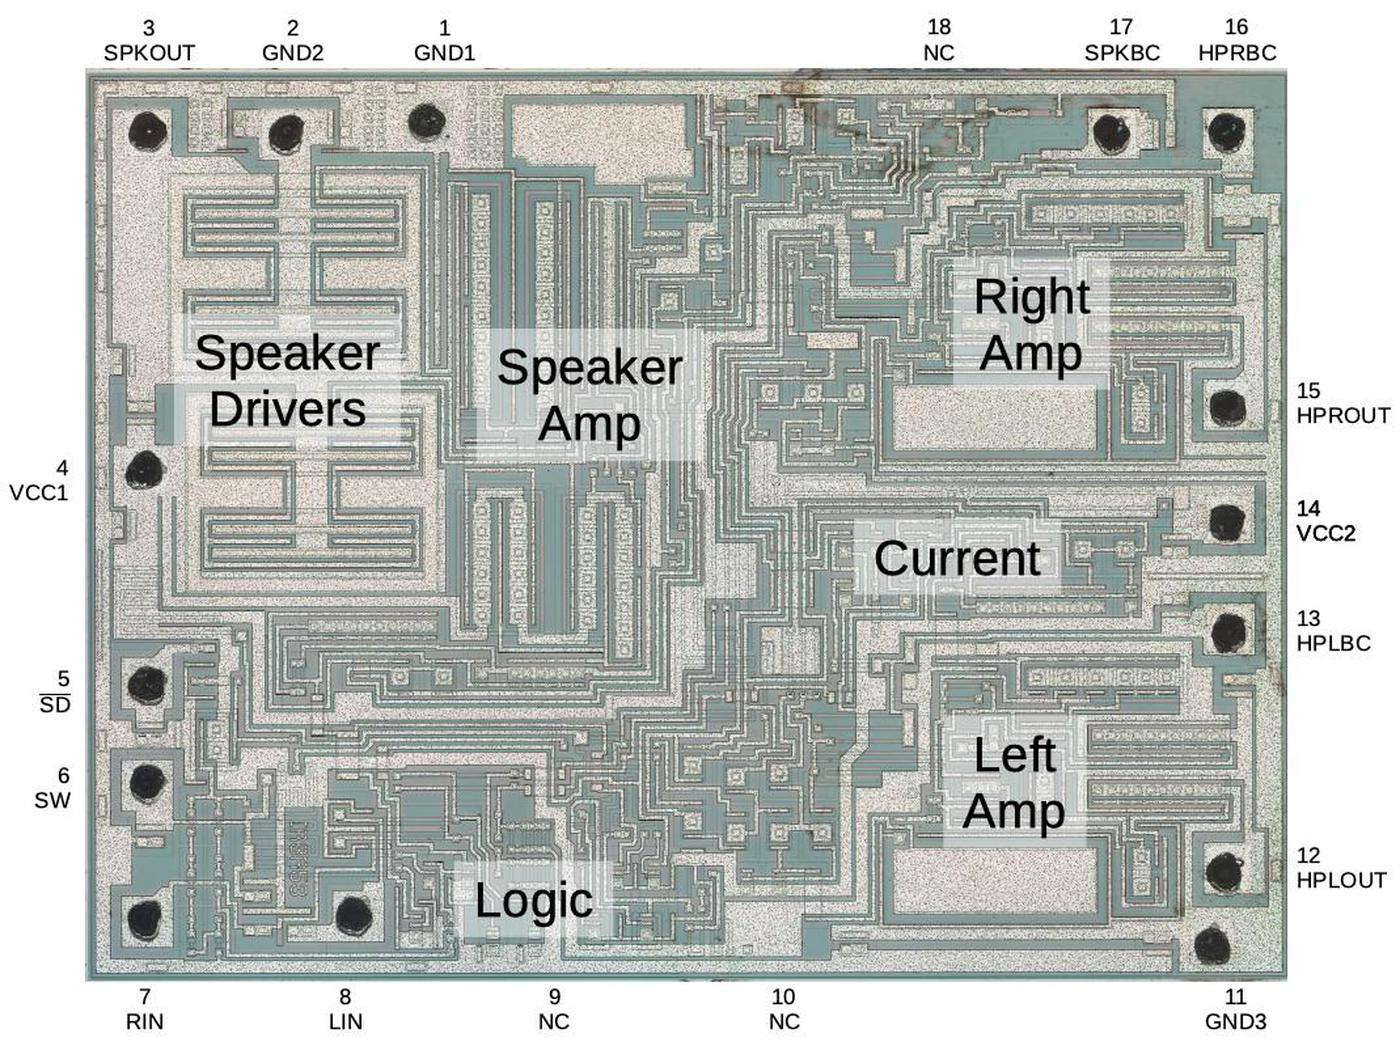 The chip with pins and key functional blocks labeled.